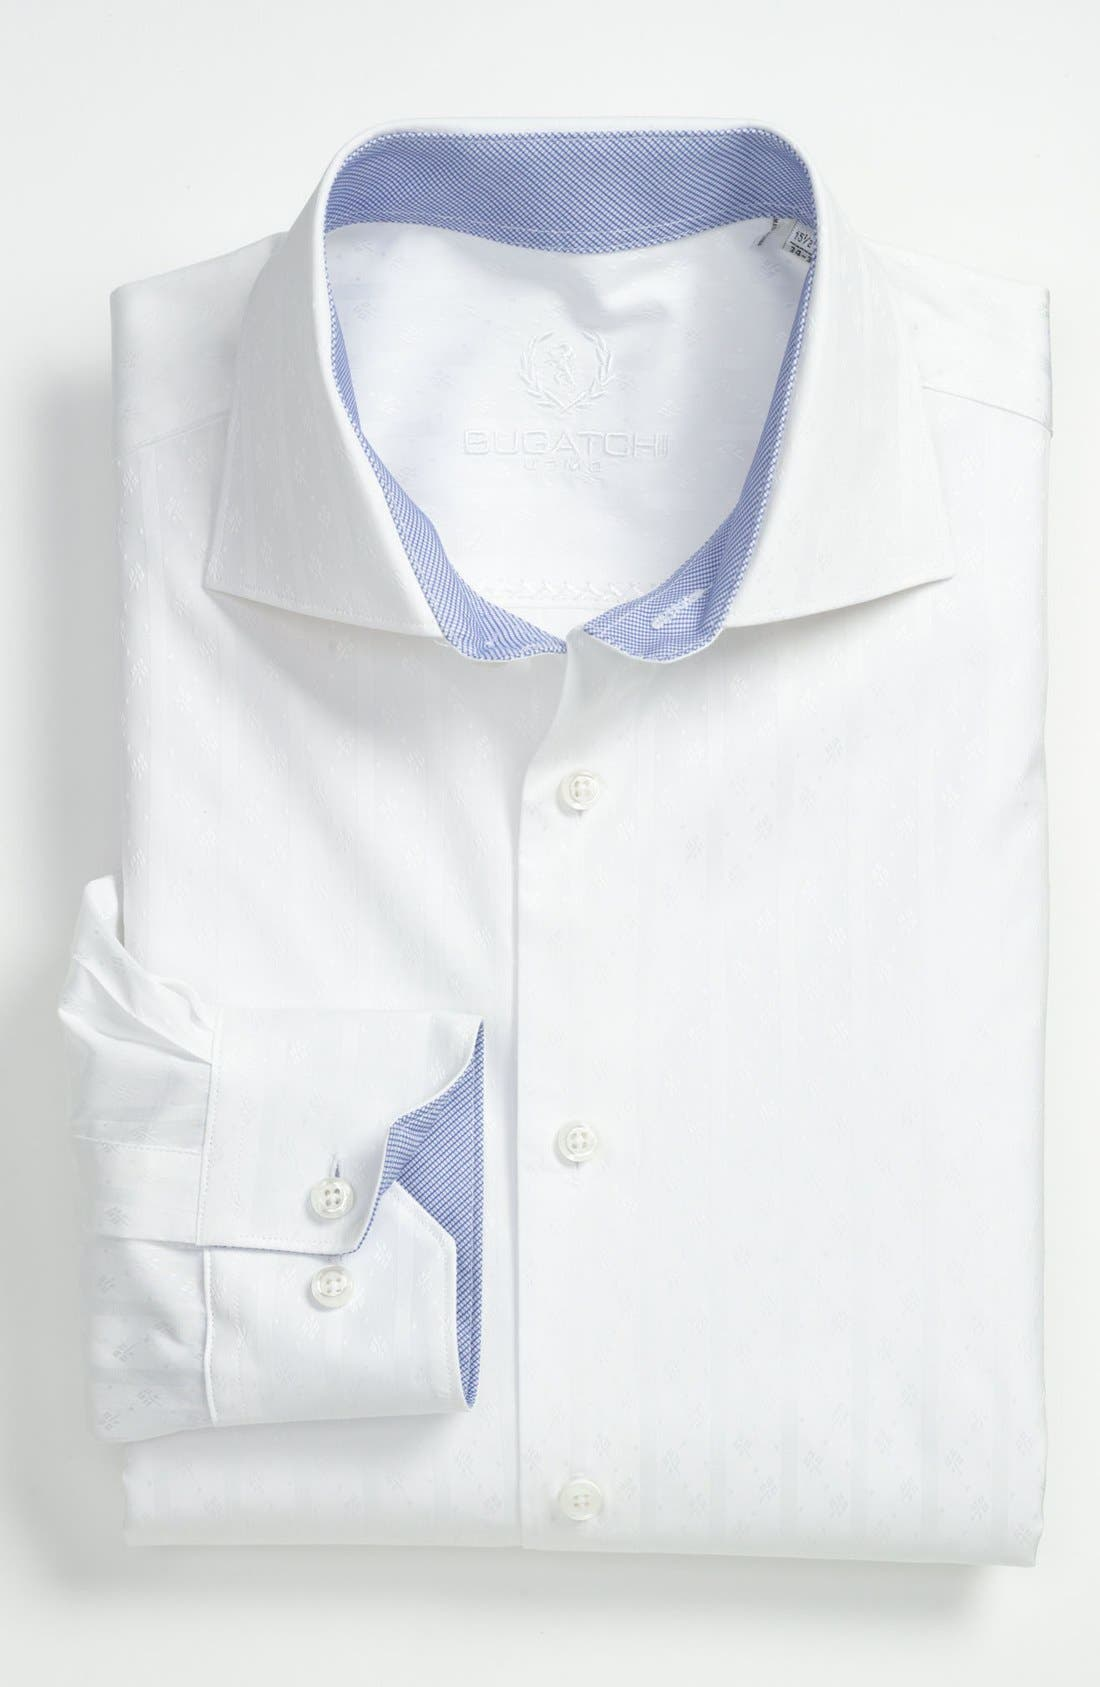 Main Image - Bugatchi Trim Fit Dress Shirt